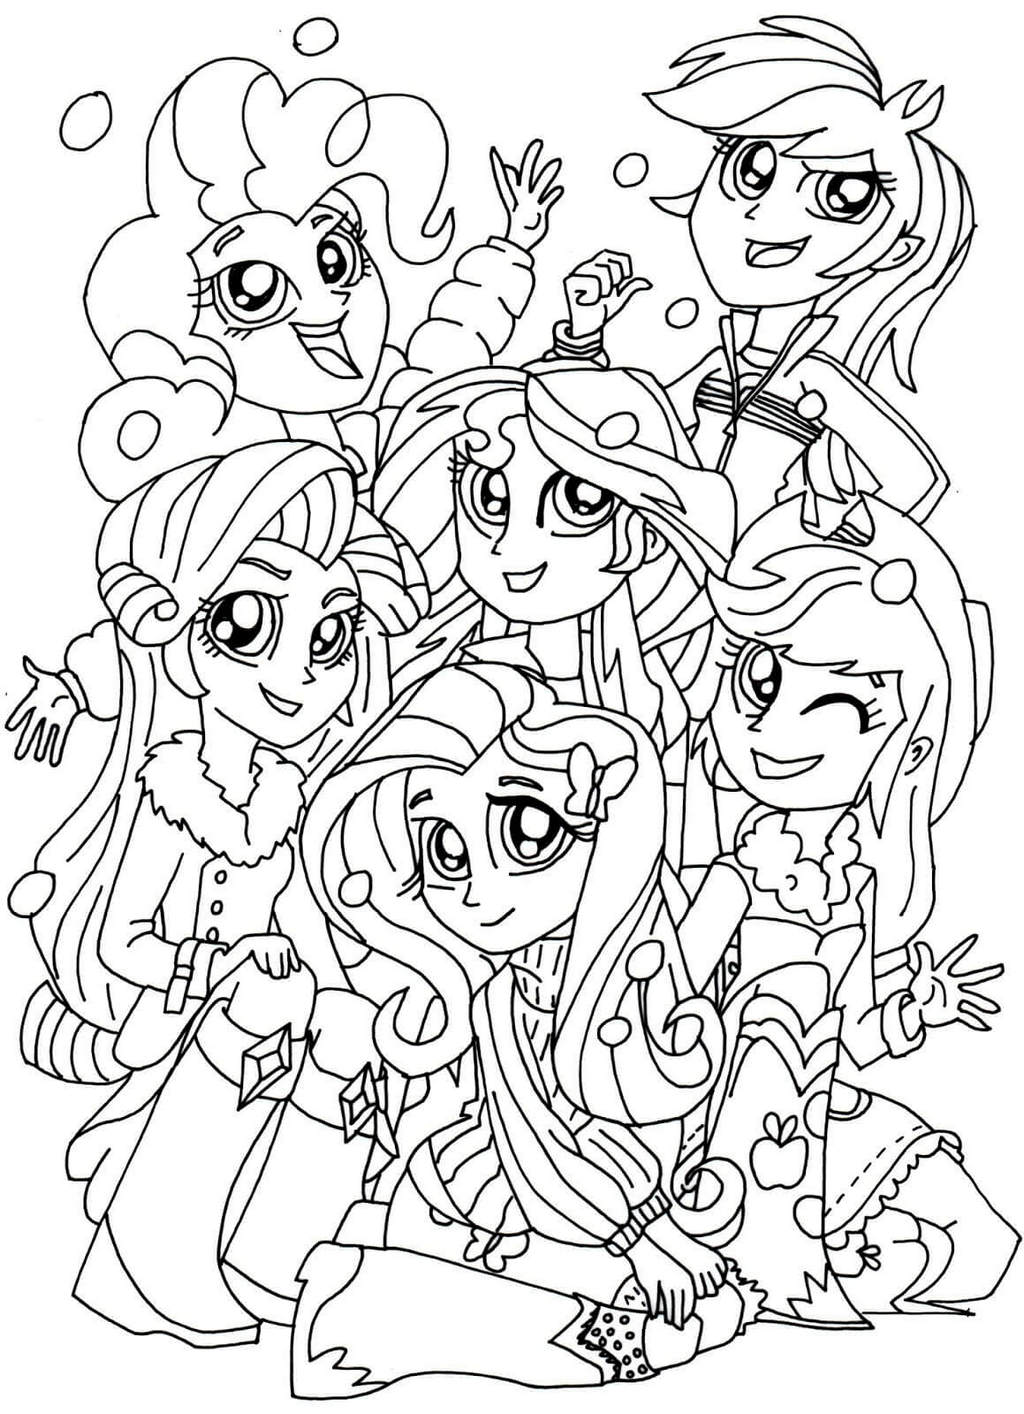 My Little Pony Equestria Girls Groups Coloring Pages